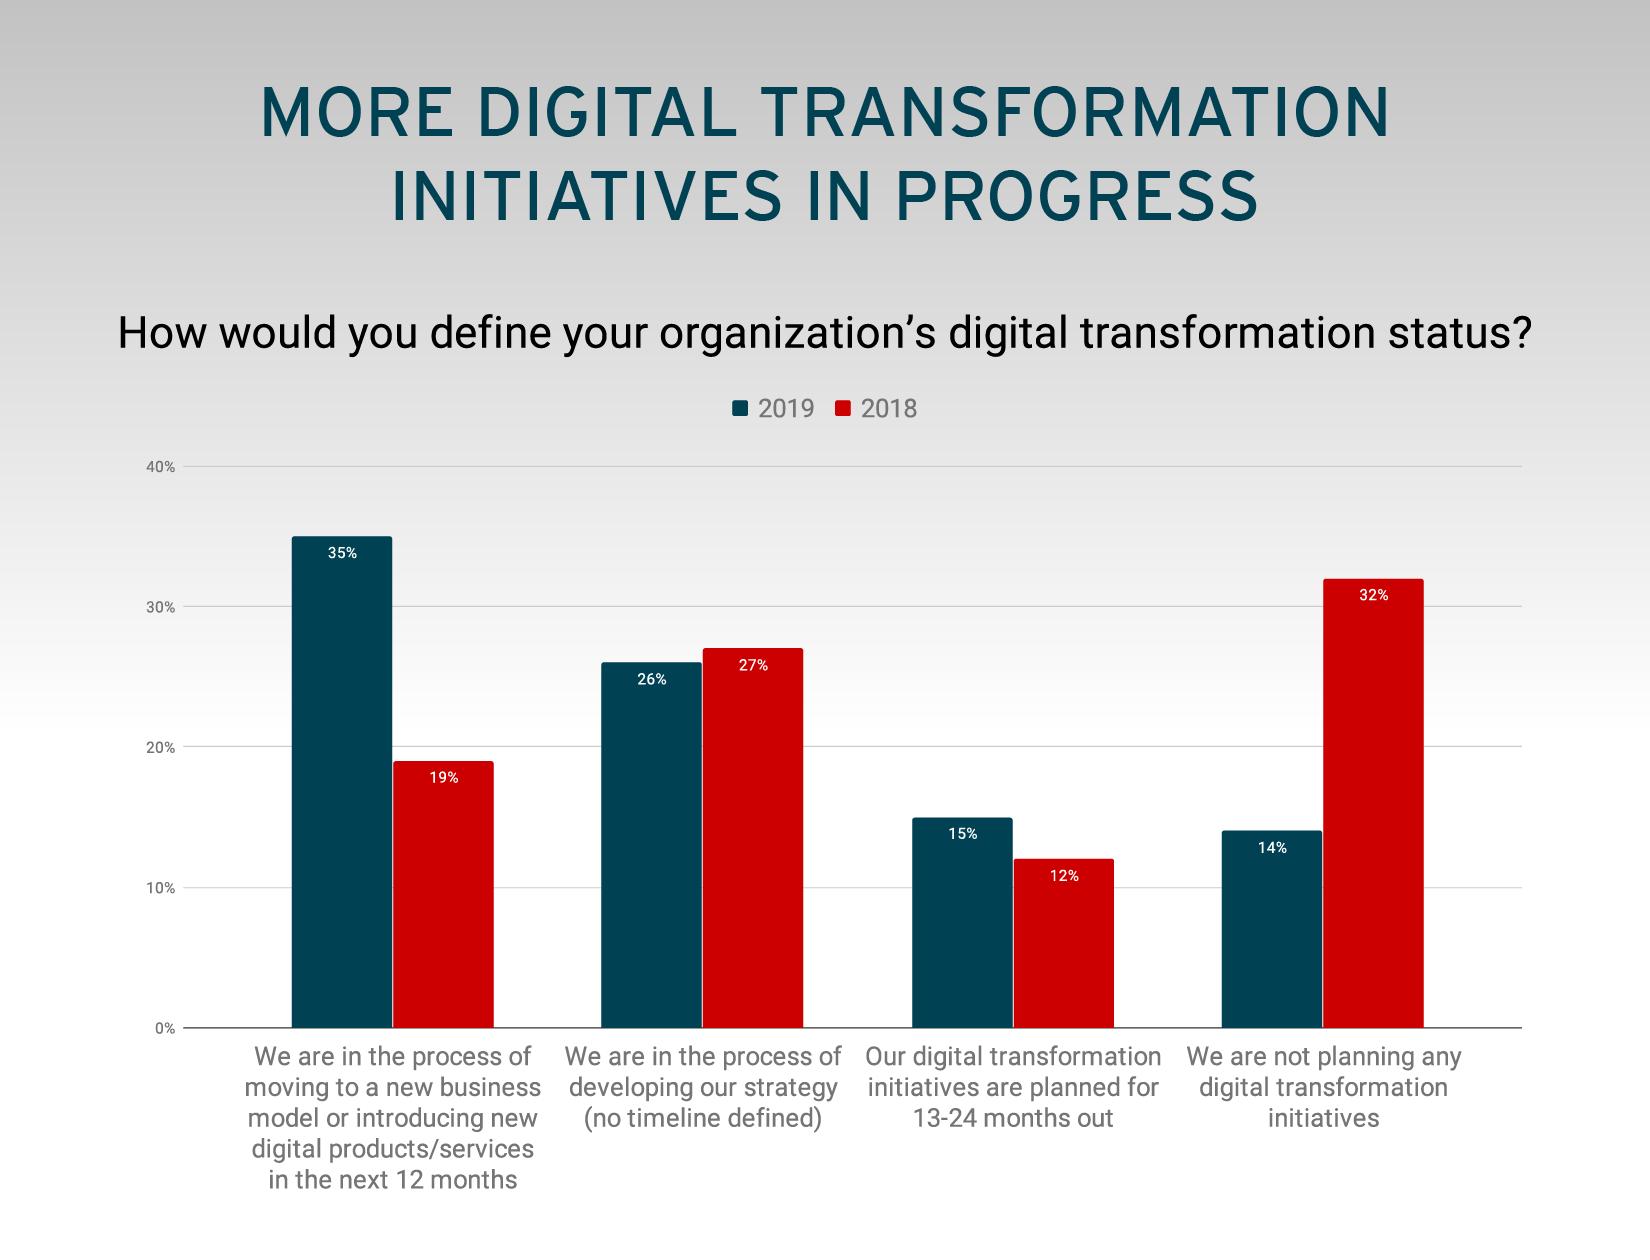 More Digital Transformation Initiatives In Progress